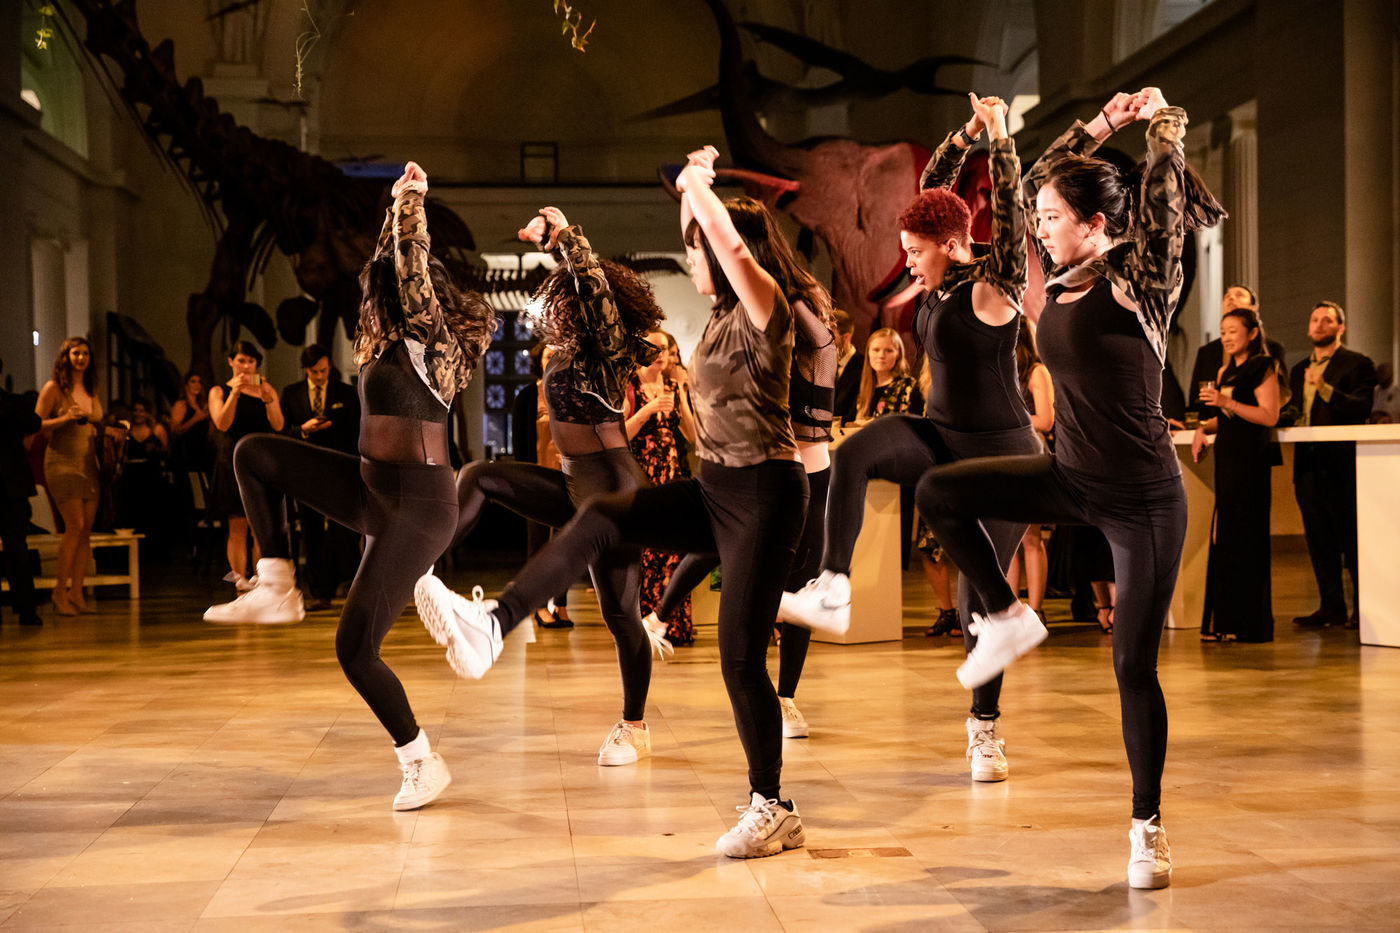 A group of dancers perform in Stanley Field Hall. Guests stand around the dancers, watching and taking photos of the performance.